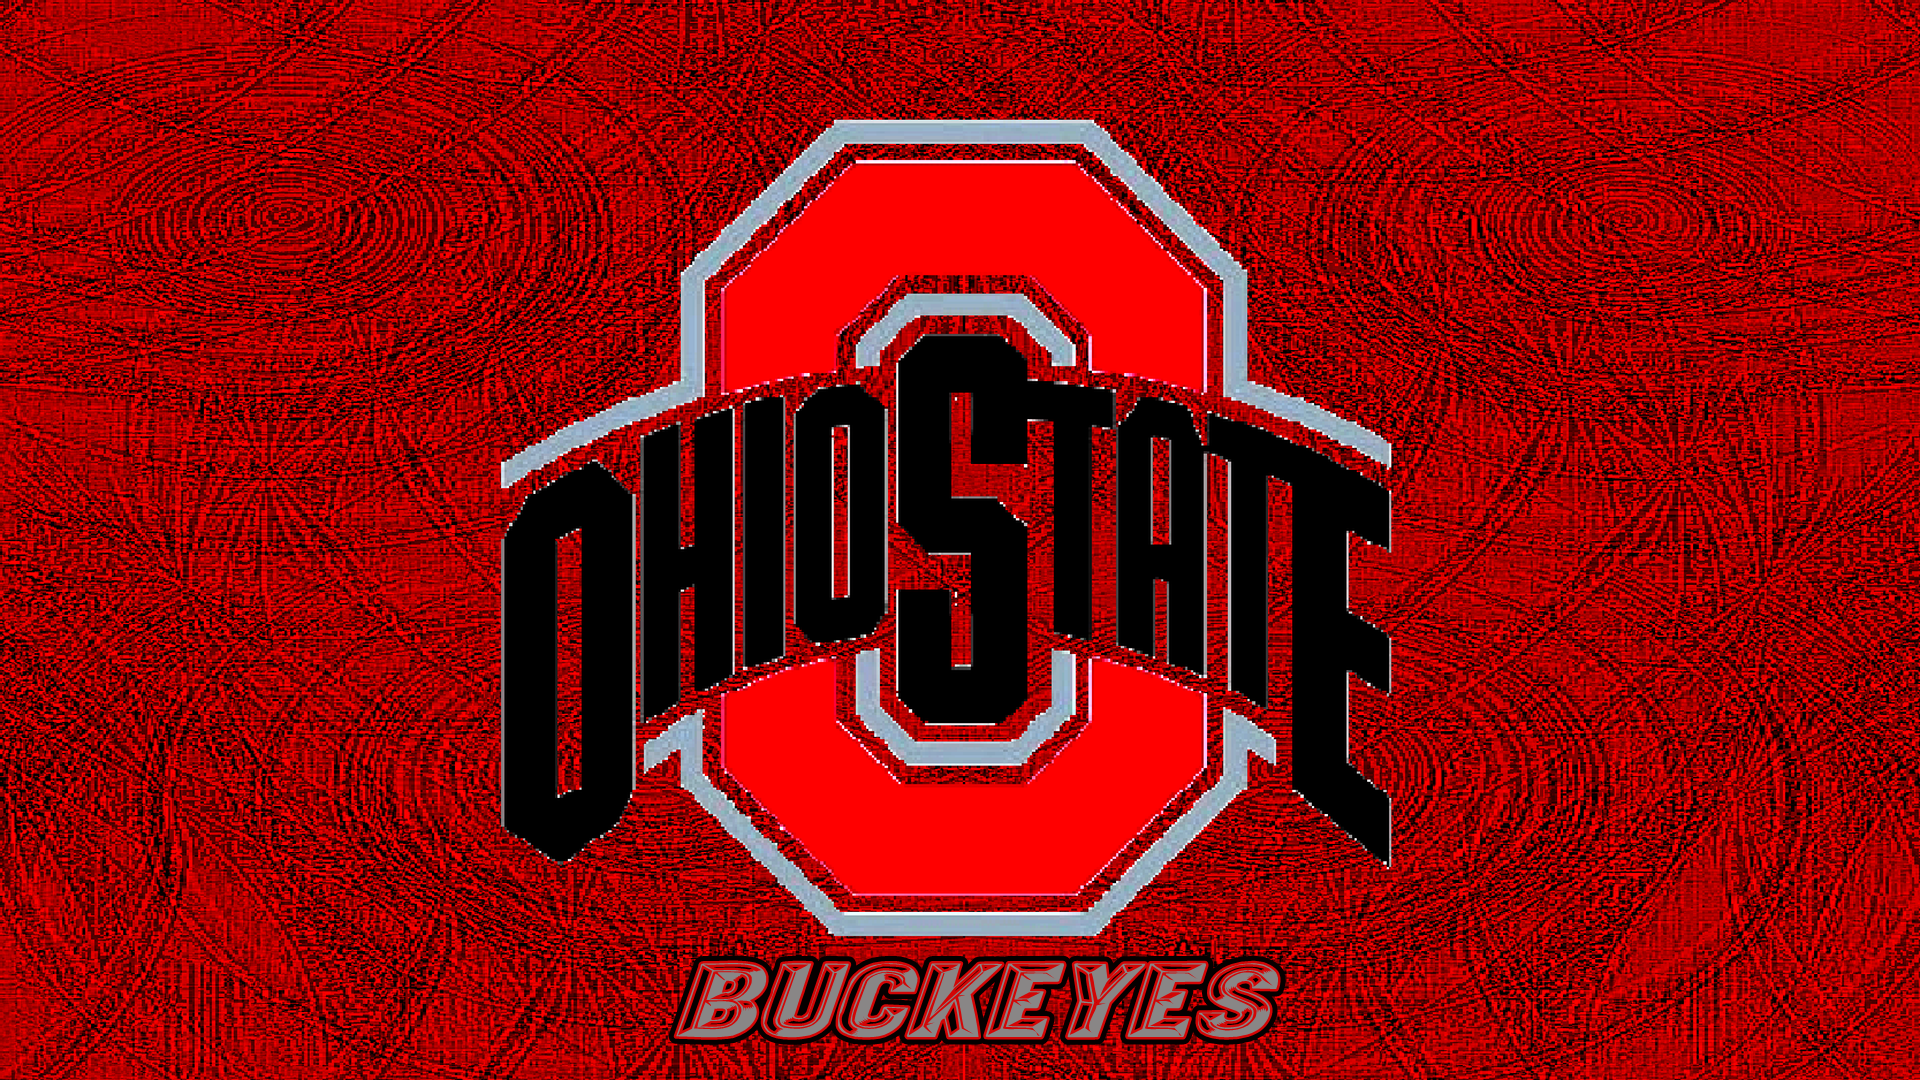 Ohio State Buckeyes images ATHLETIC LOGO #8 HD wallpaper ...